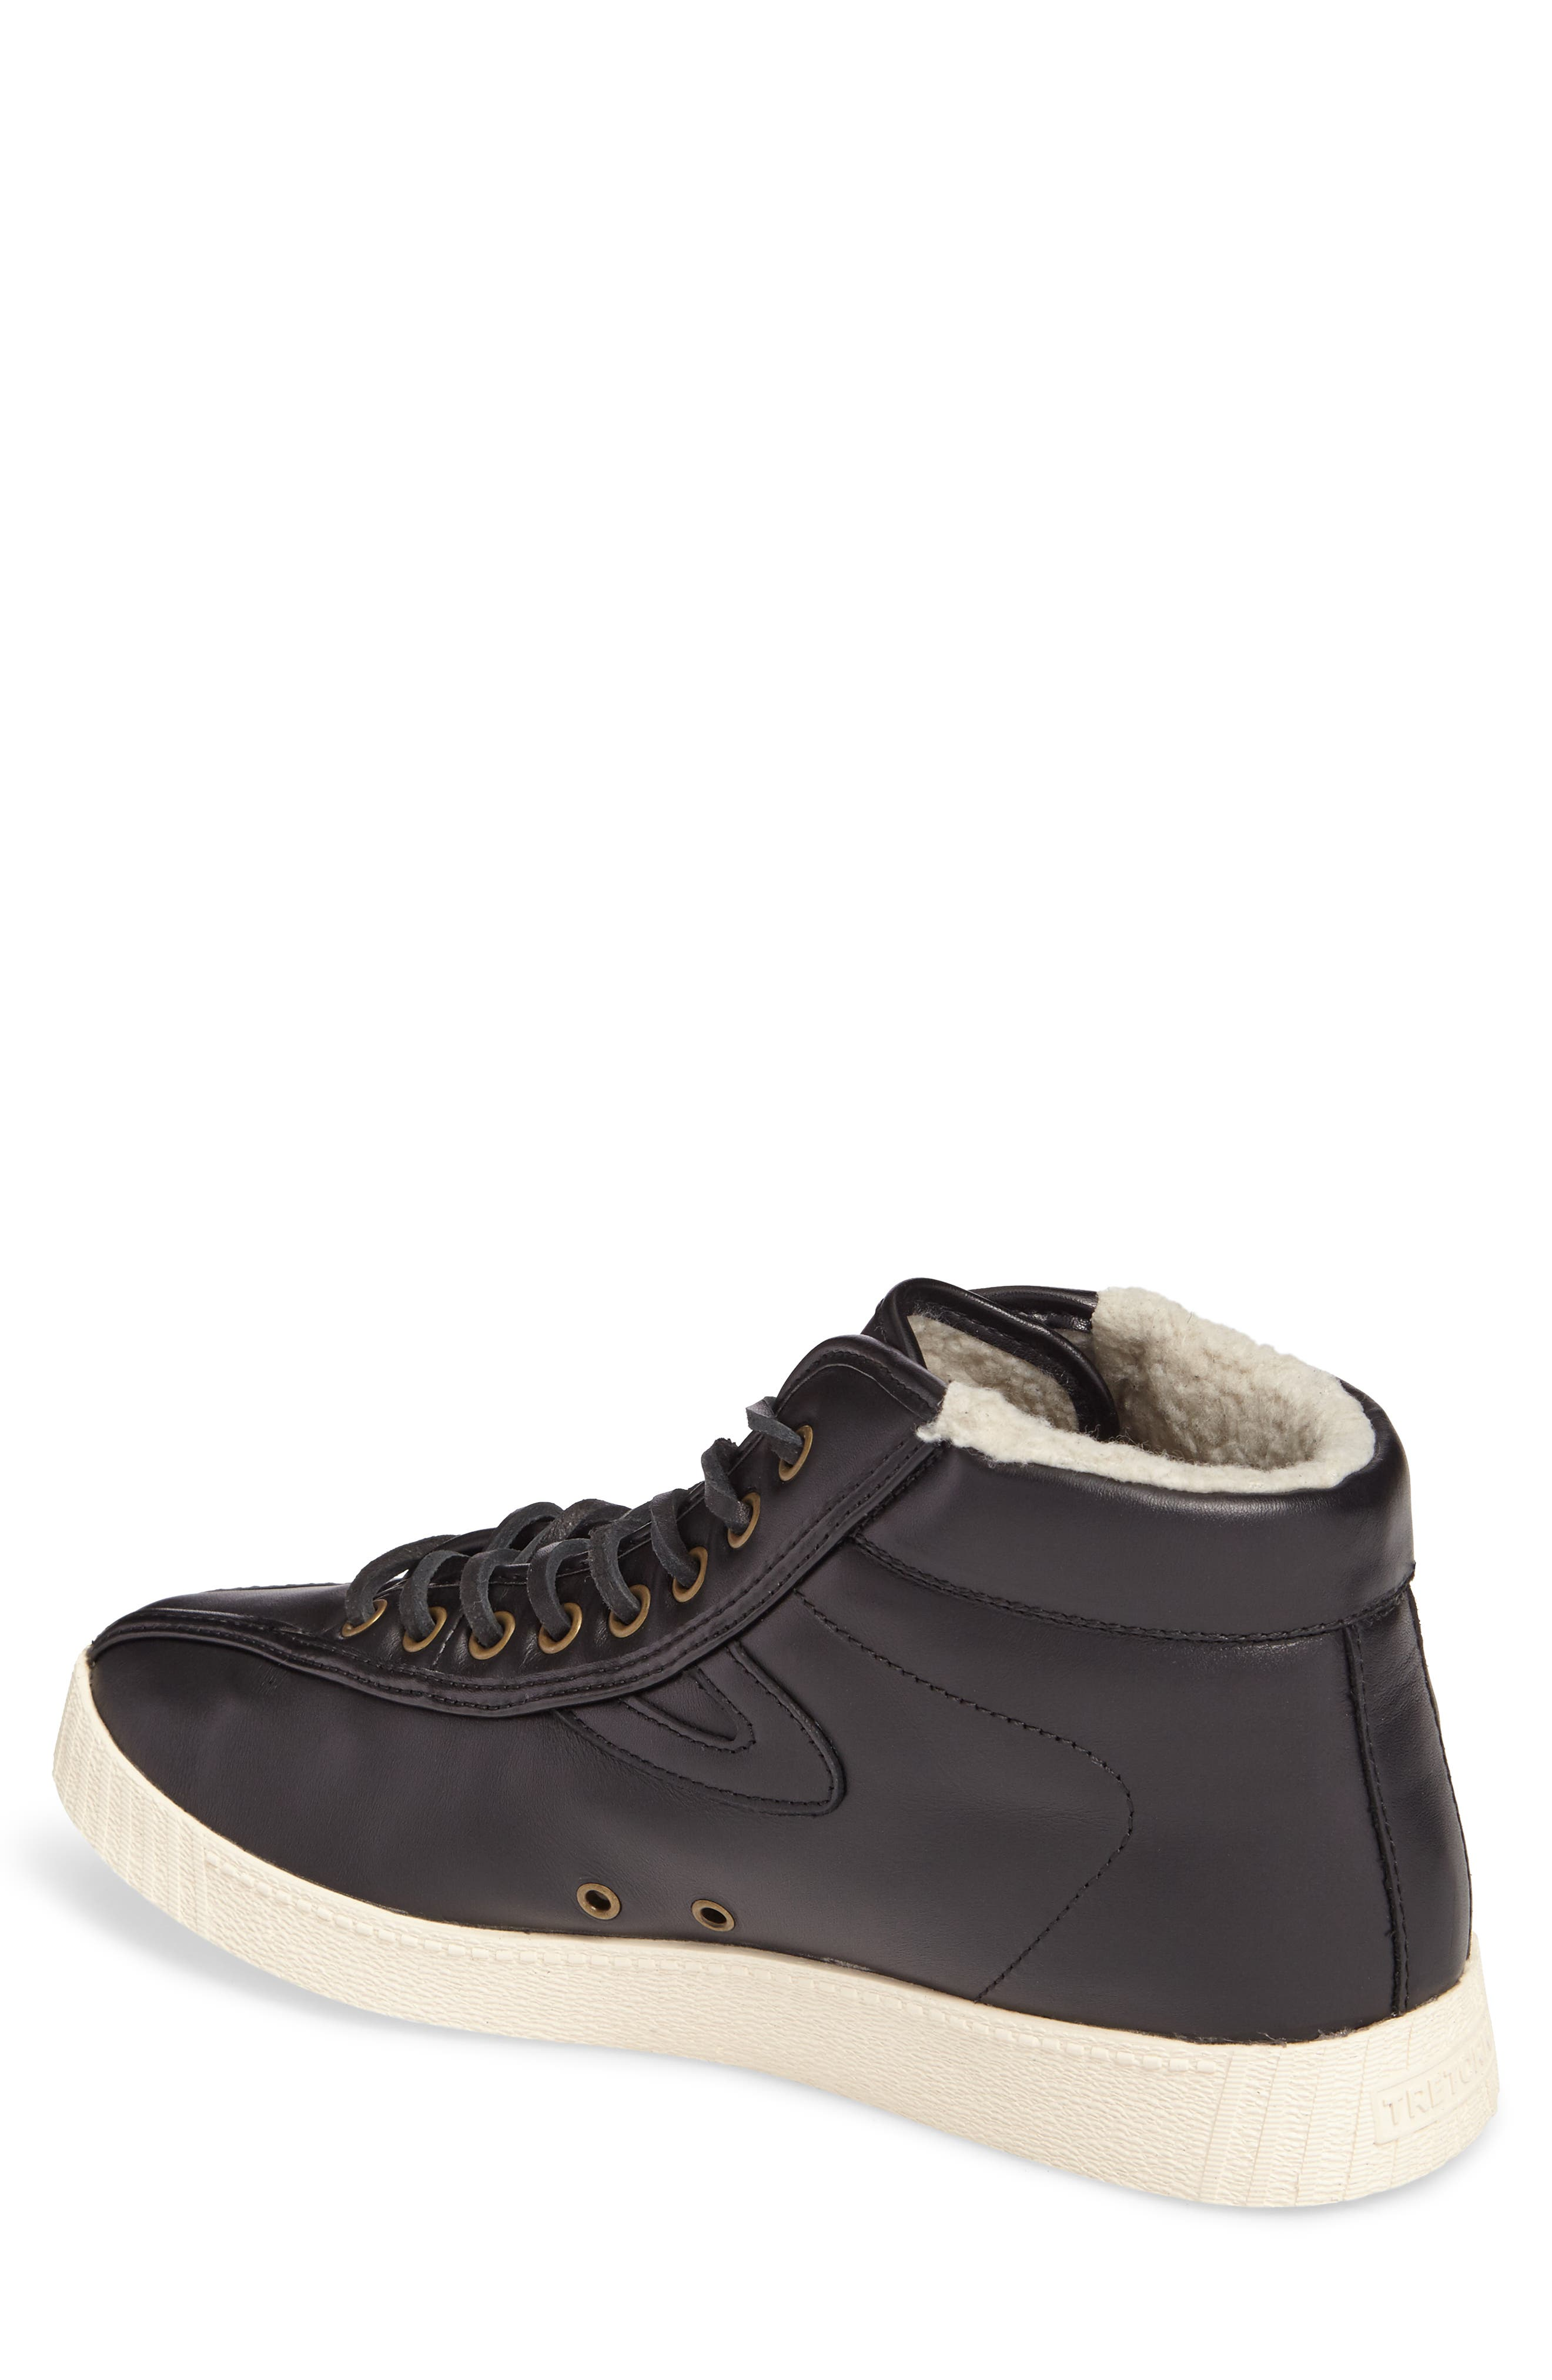 Alternate Image 2  - Tretorn Nylite Hi 2 Sneaker (Men)